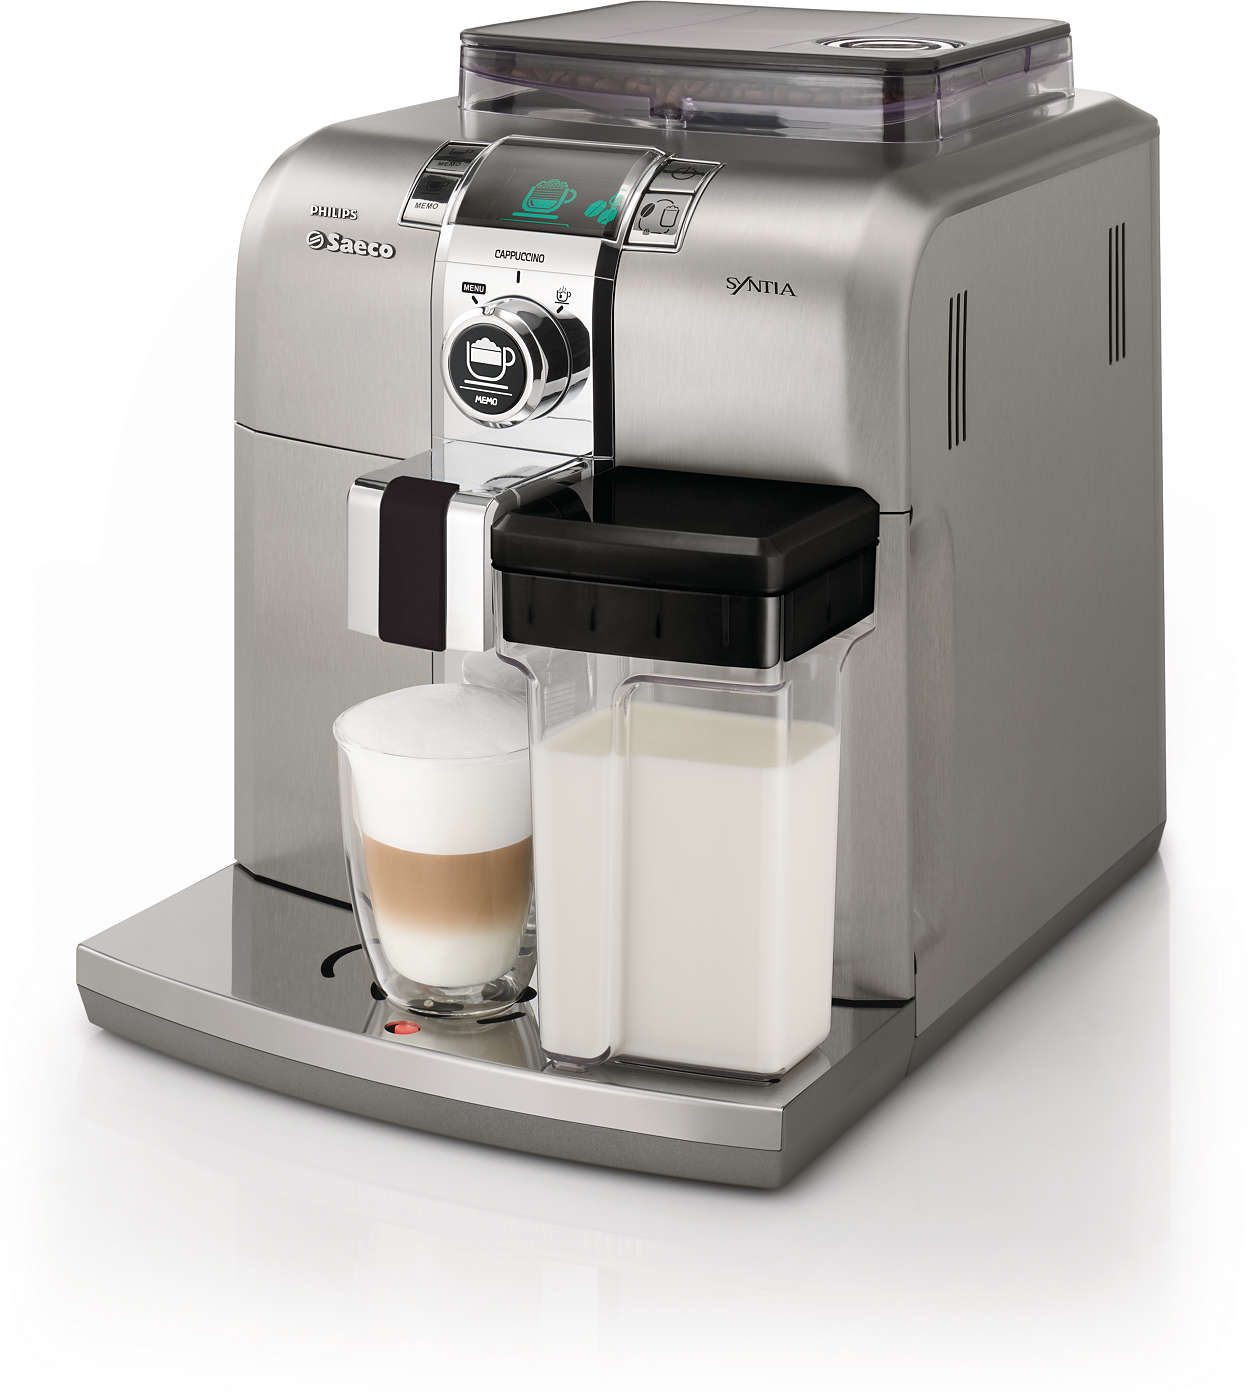 syntia super automatic espresso machine hd8838 47 saeco. Black Bedroom Furniture Sets. Home Design Ideas